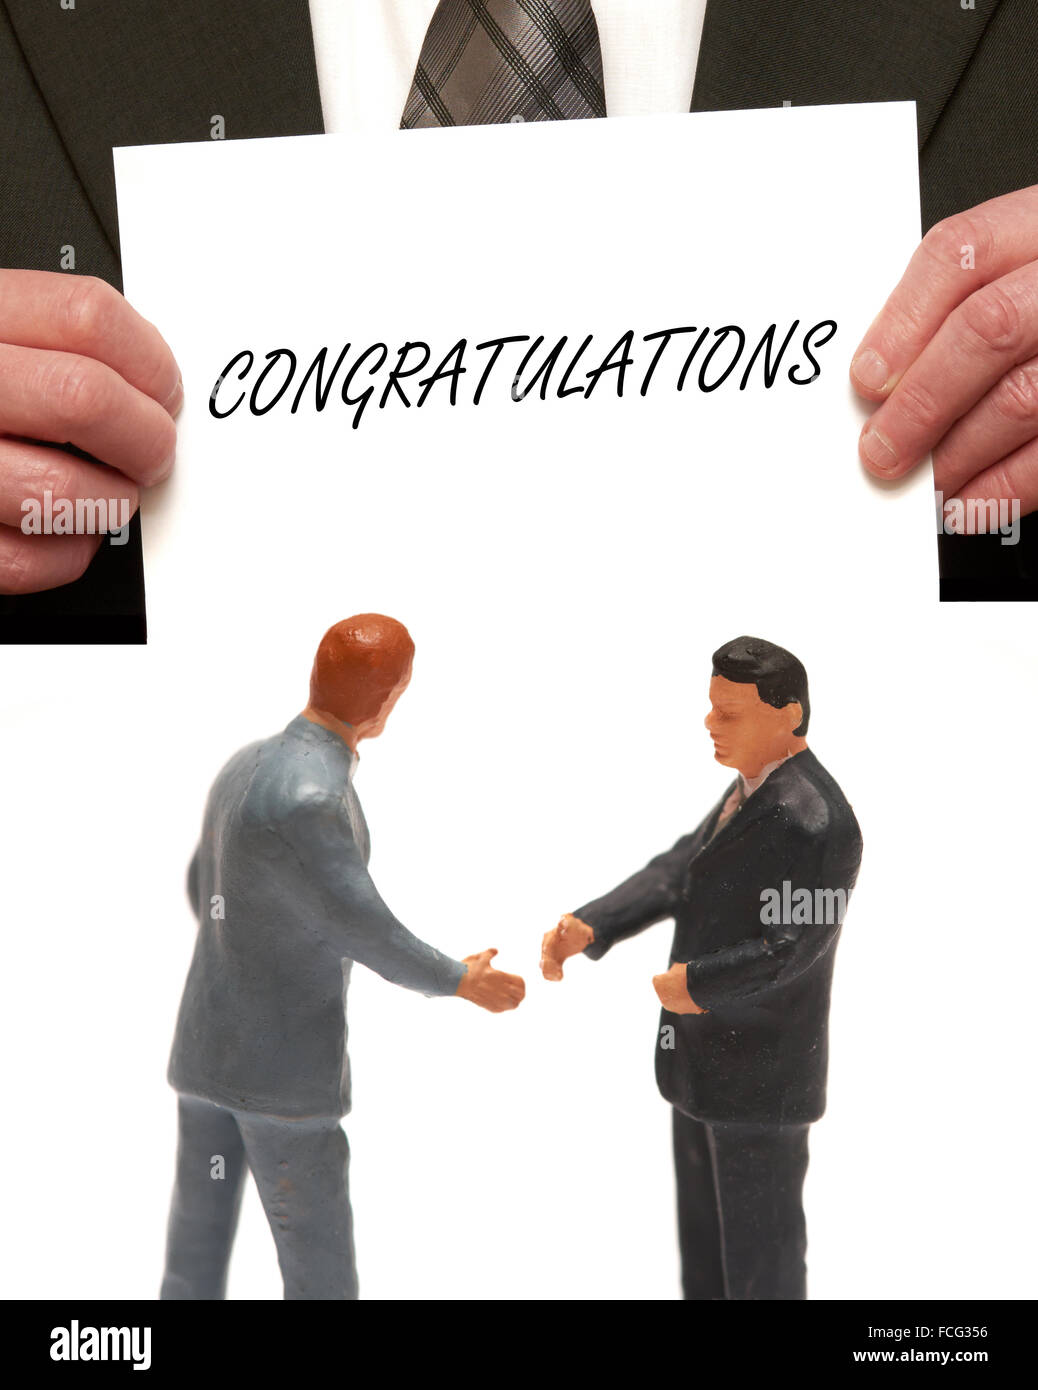 Congratulations concept 2 miniature figurines in suits shaking hands - Stock Image